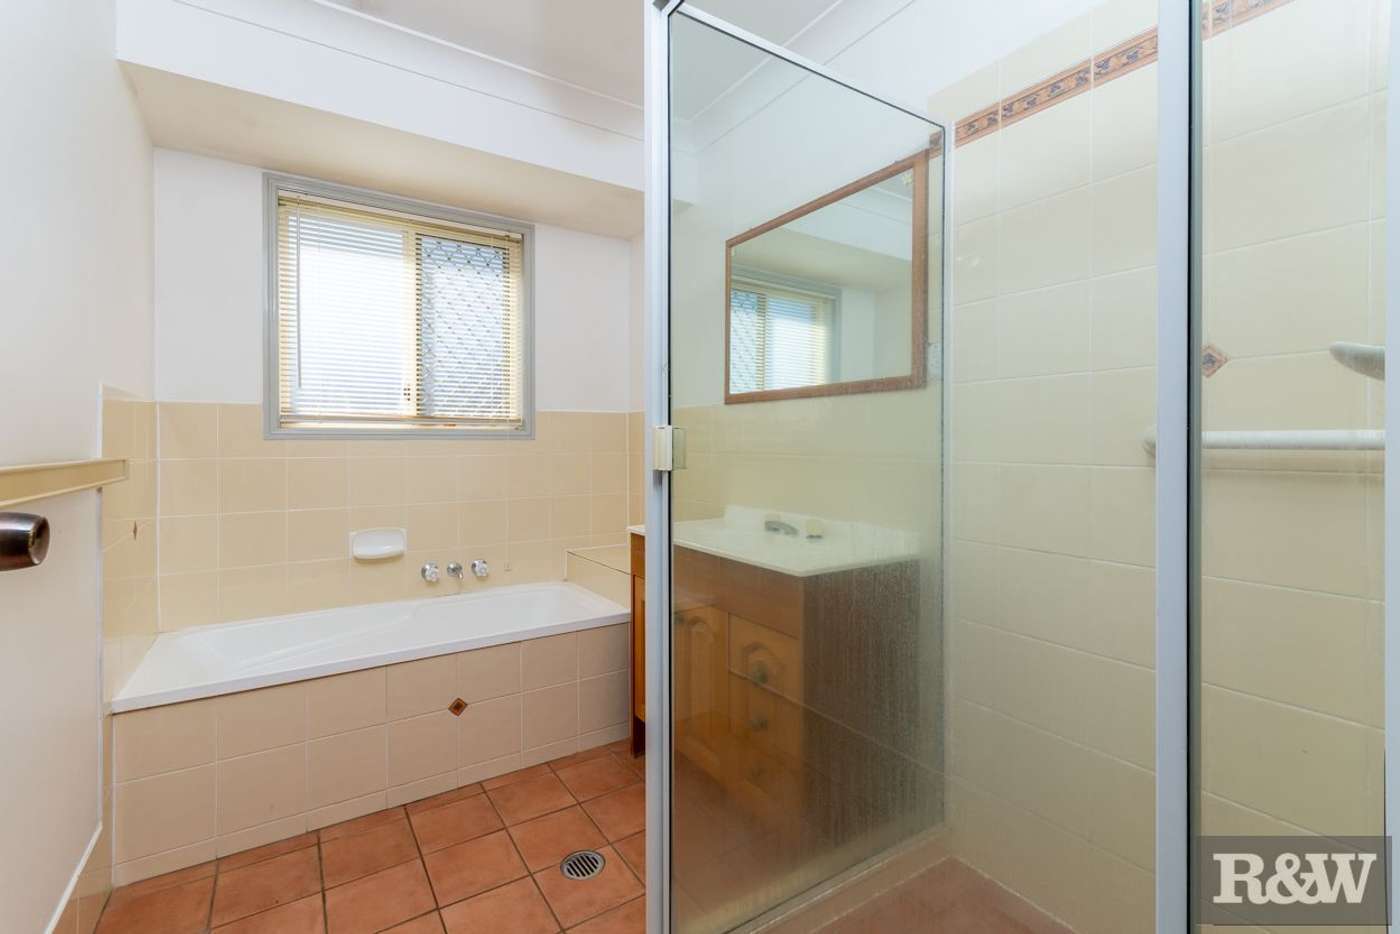 Seventh view of Homely house listing, 1/47 Belvedere Crescent, Bellmere QLD 4510